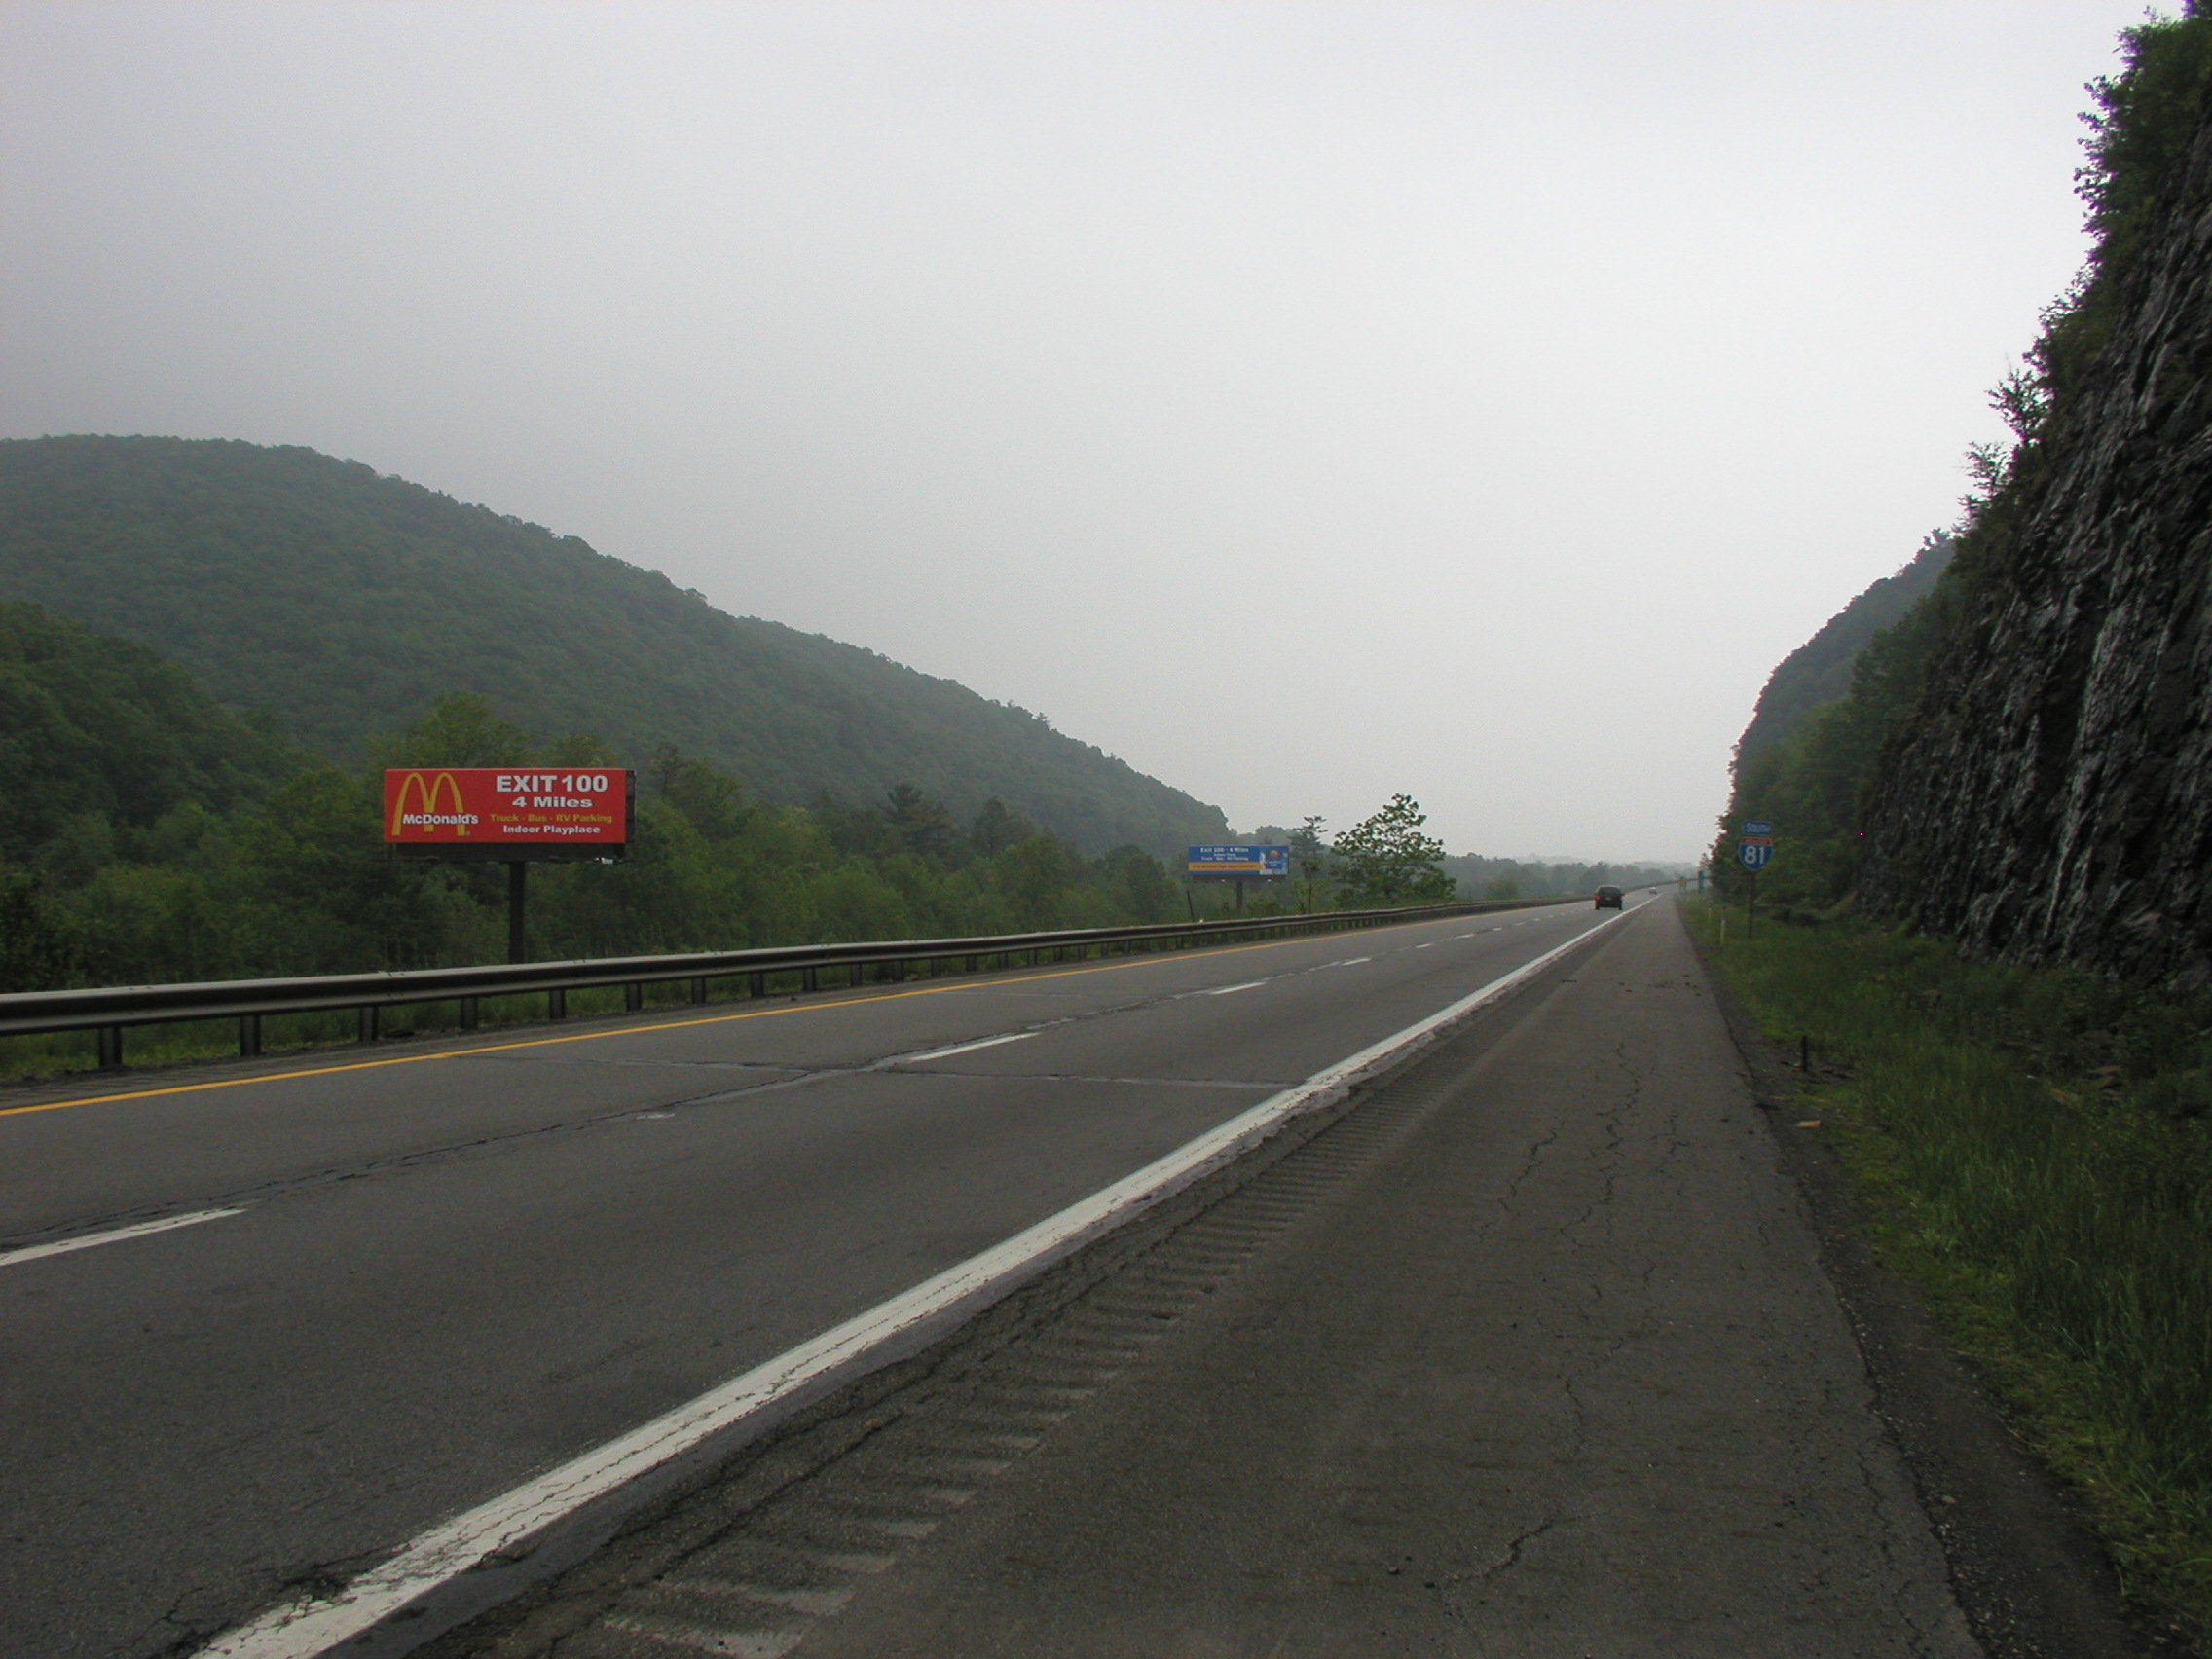 I-81 Outdoor Advertising and Billboards in Schuylkill County Pa